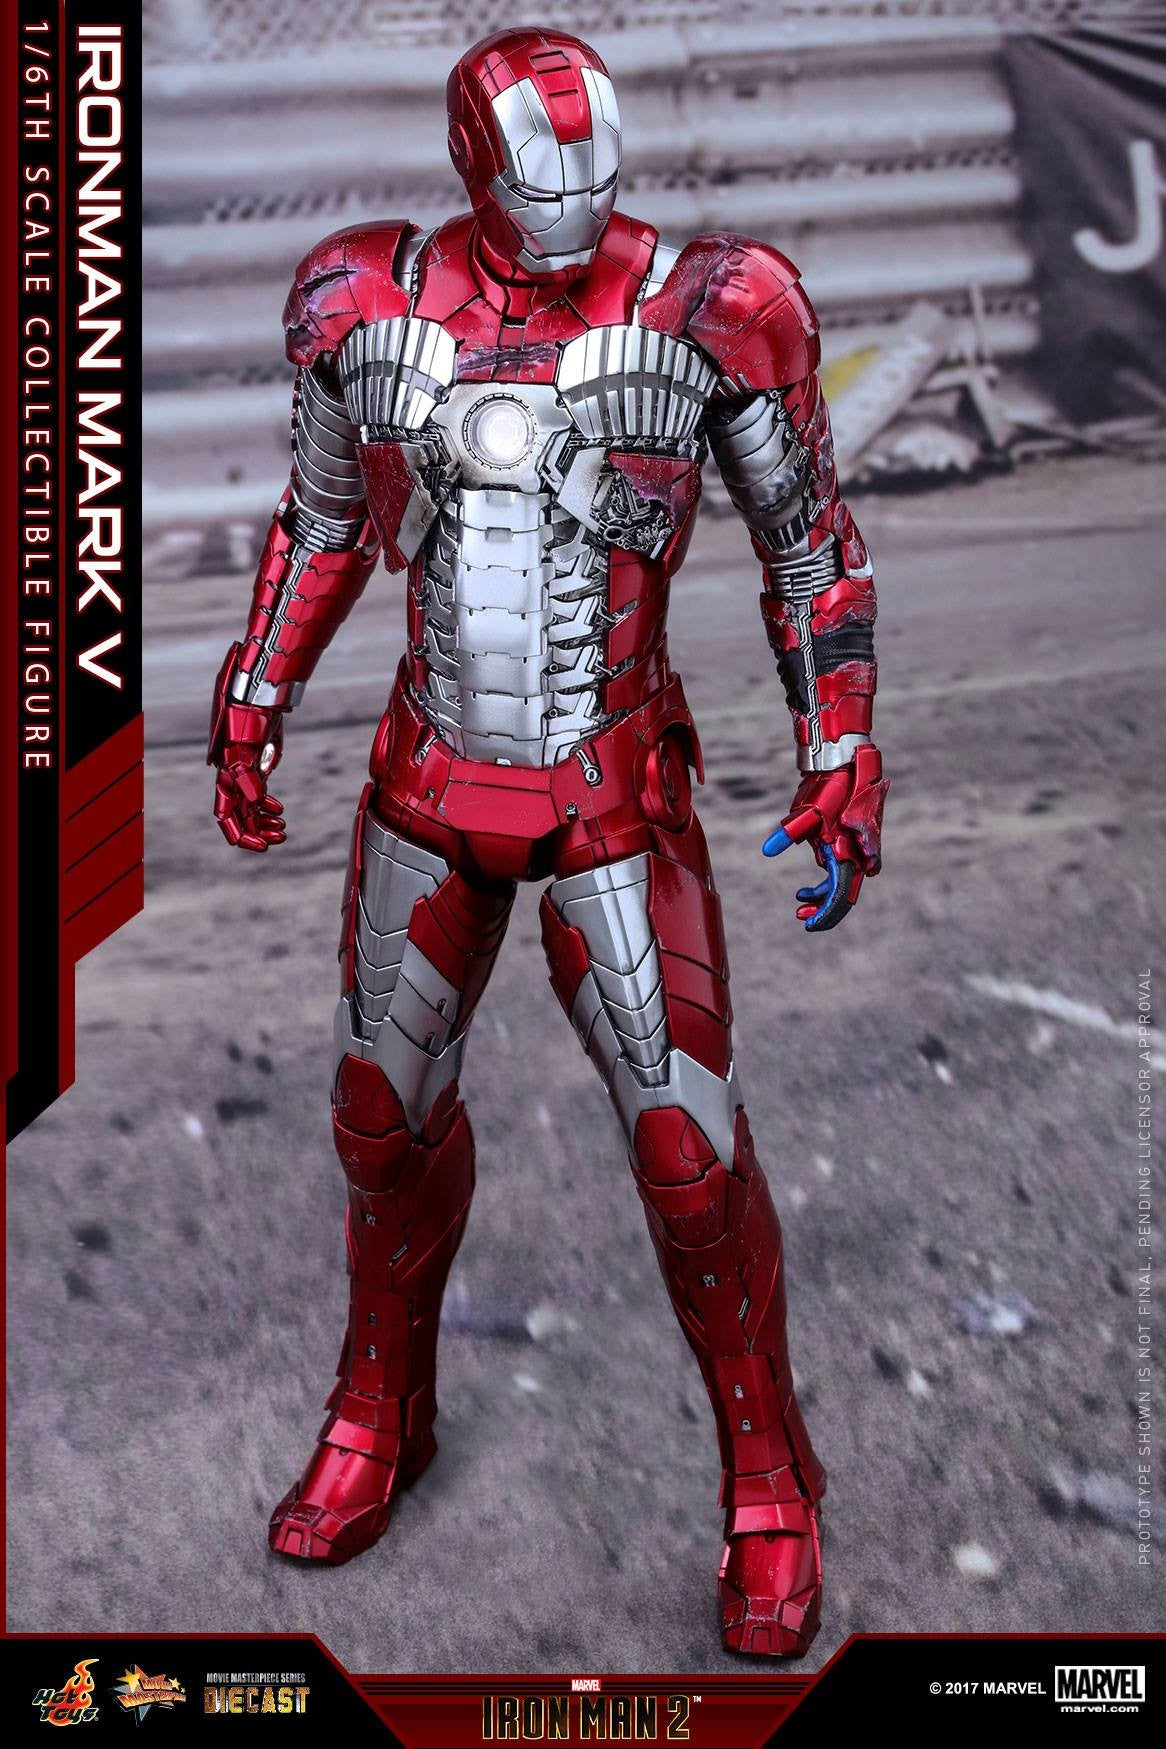 Hot Toys - MMS400D18 - Iron Man 2 - Mark V (DIECAST) - Marvelous Toys - 11